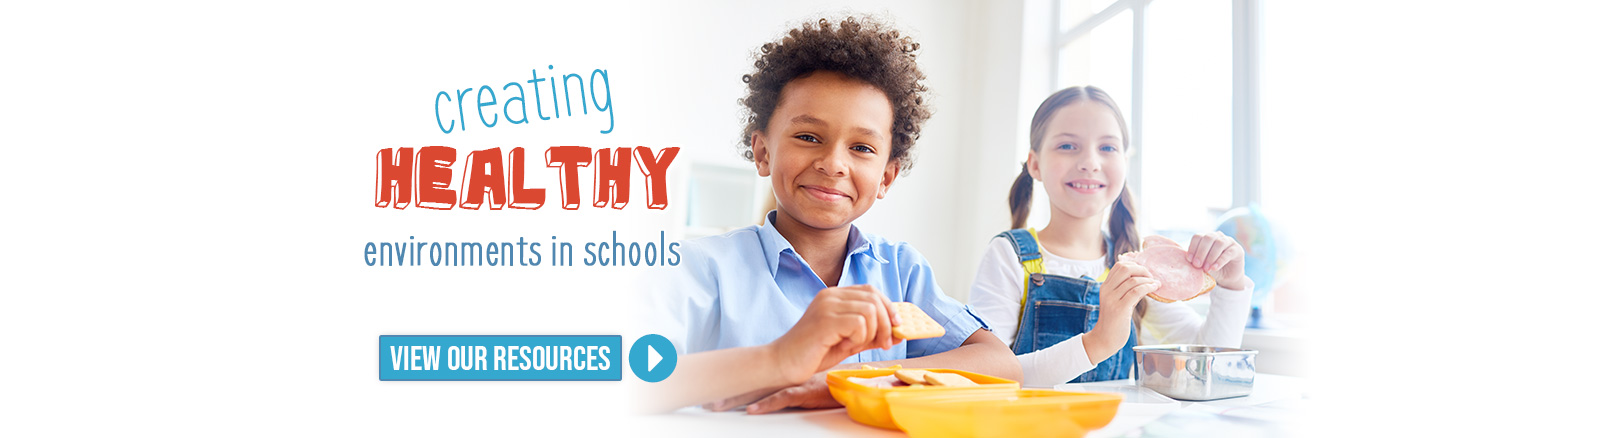 Creating Healthy Environments in Schools